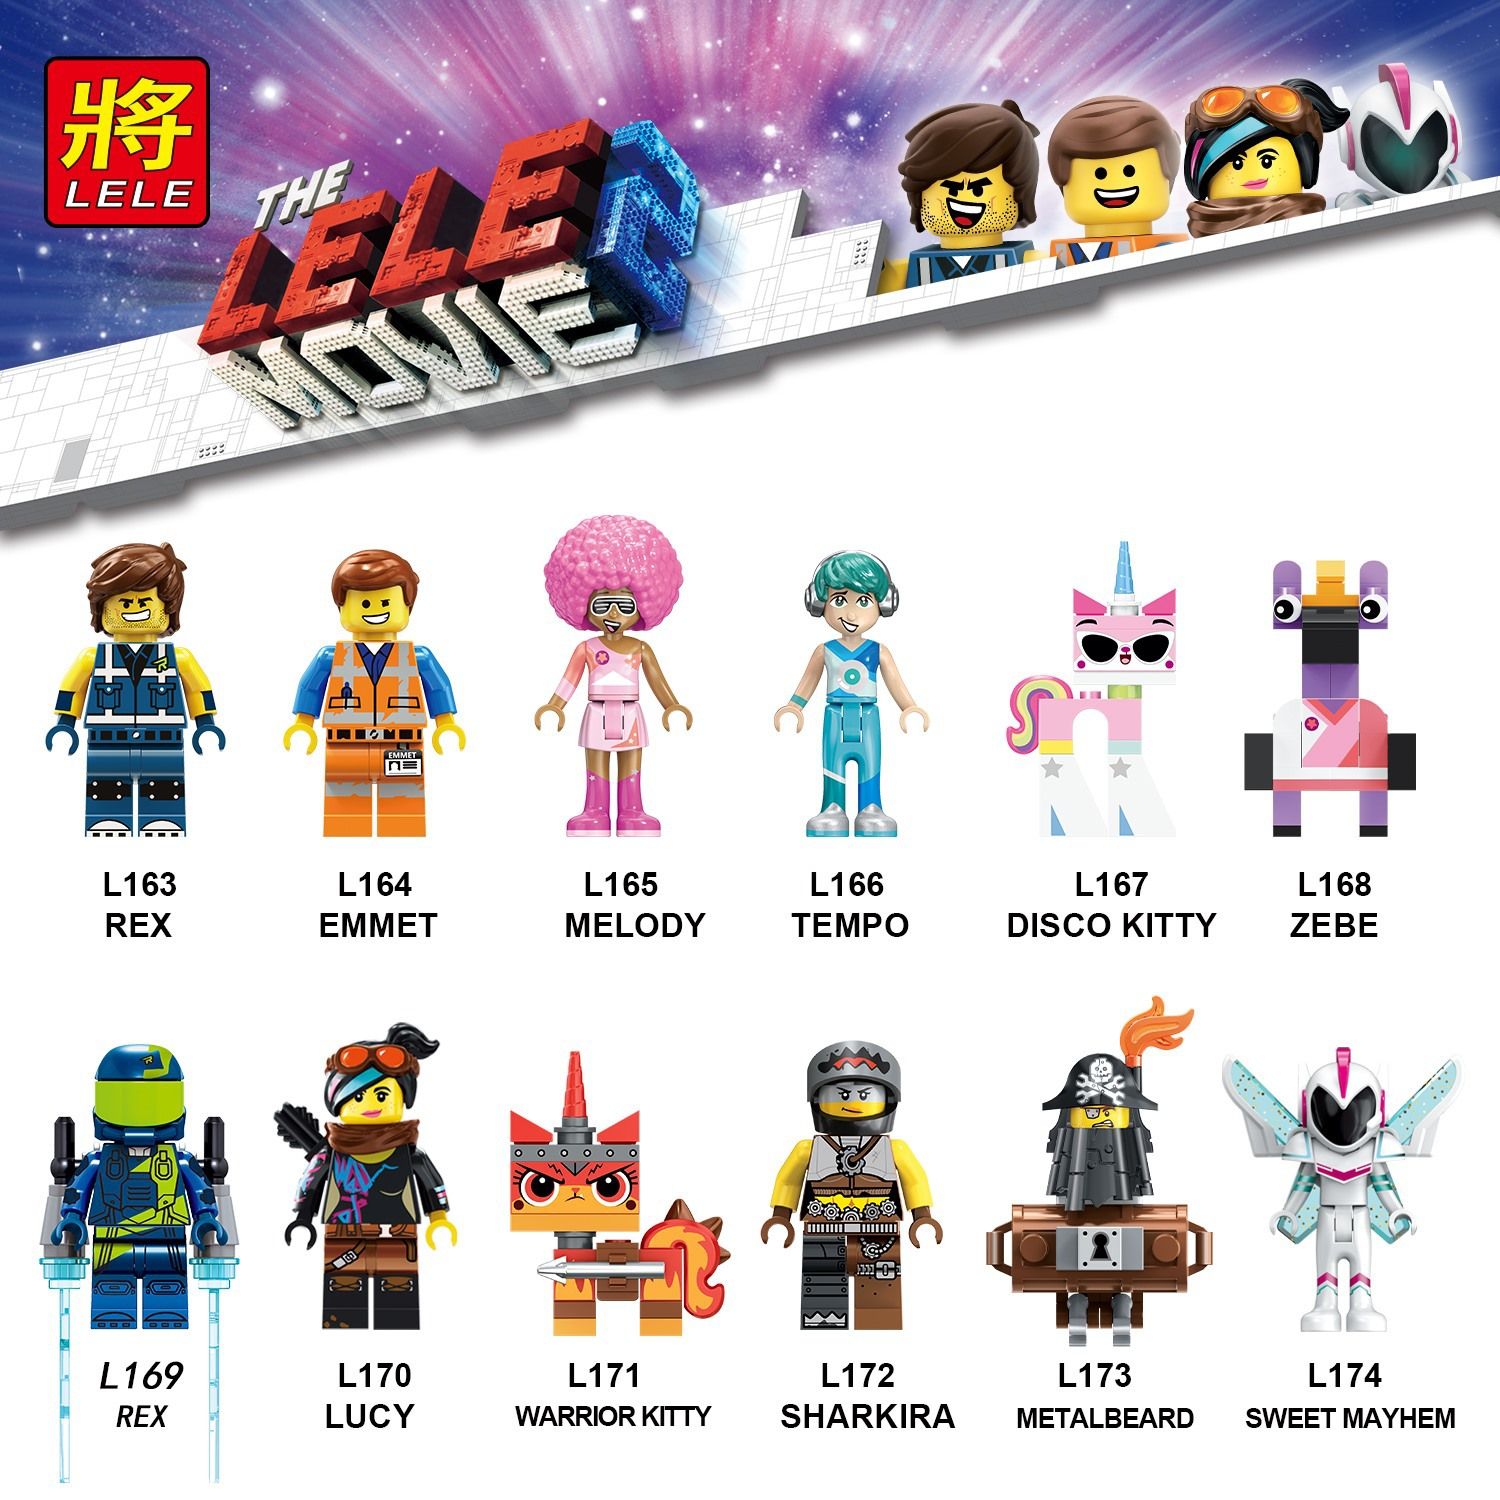 New Arrival Legoed Rex Melody Disco Kitty Sweet Mayhem Playmobil Building Blocks Minifigured Bricks Toys For Children Gift